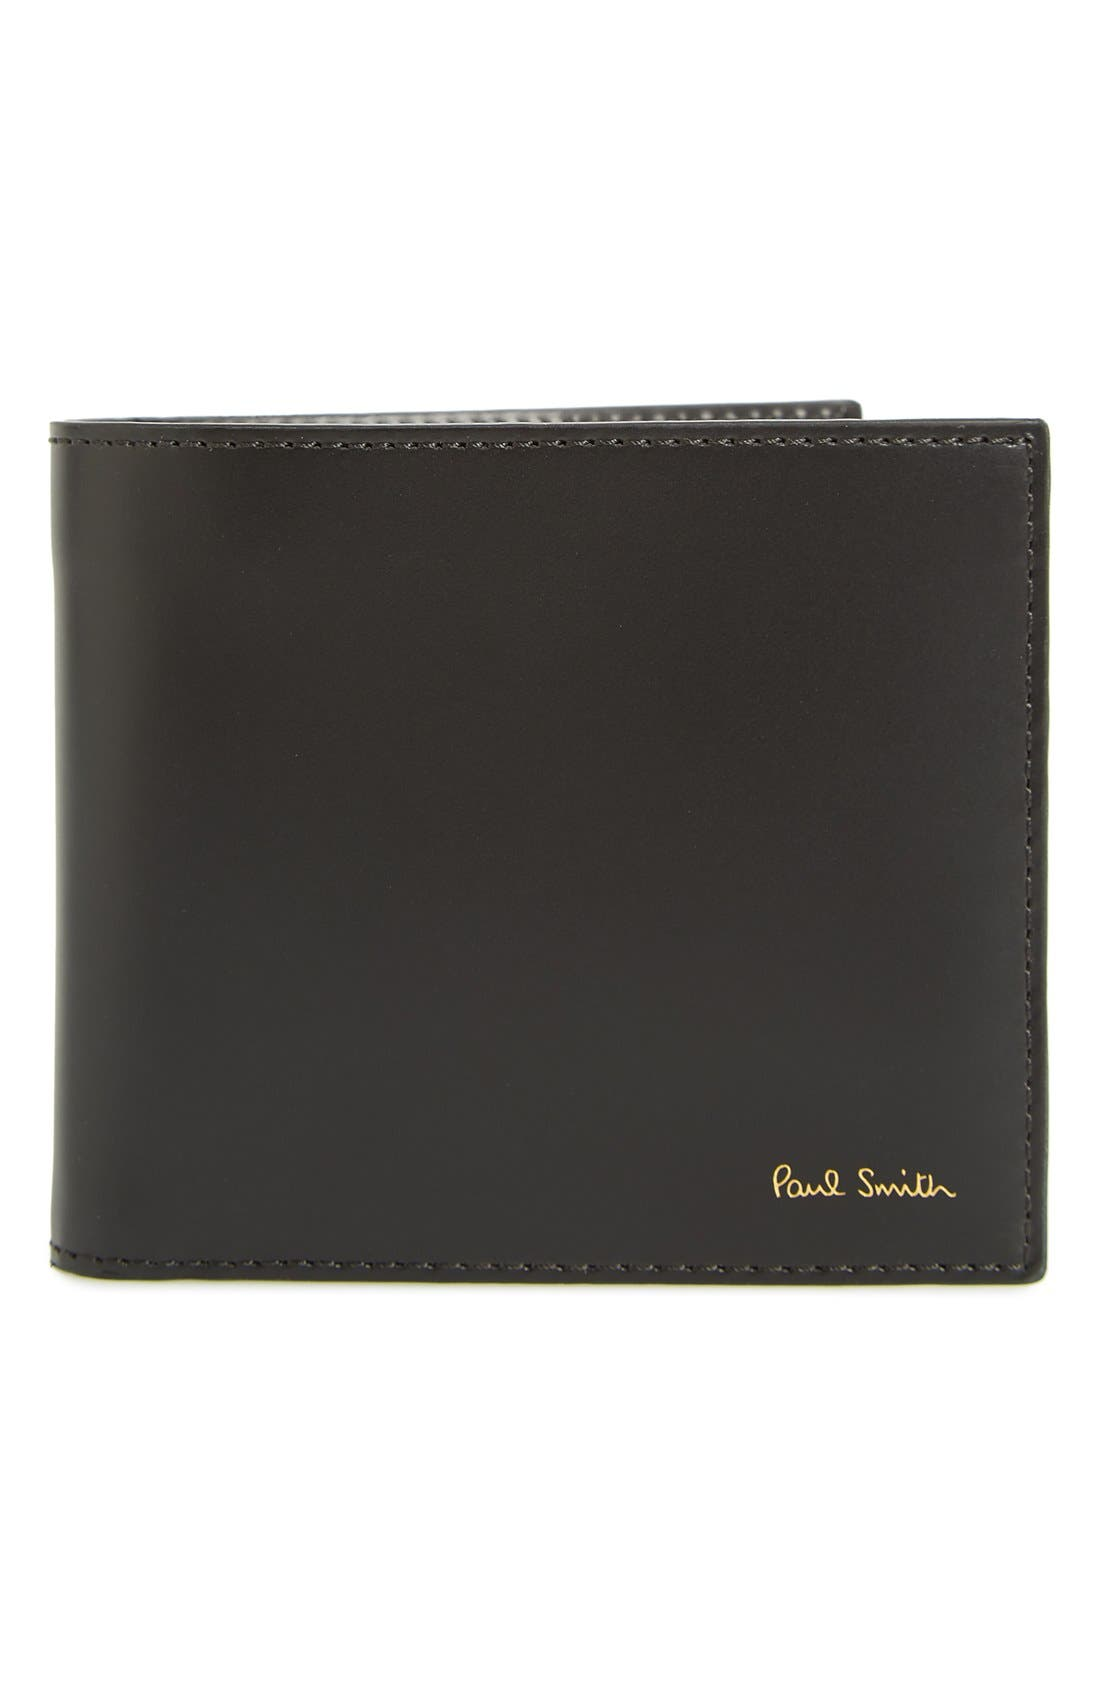 Alternate Image 1 Selected - Paul Smith Leather Wallet